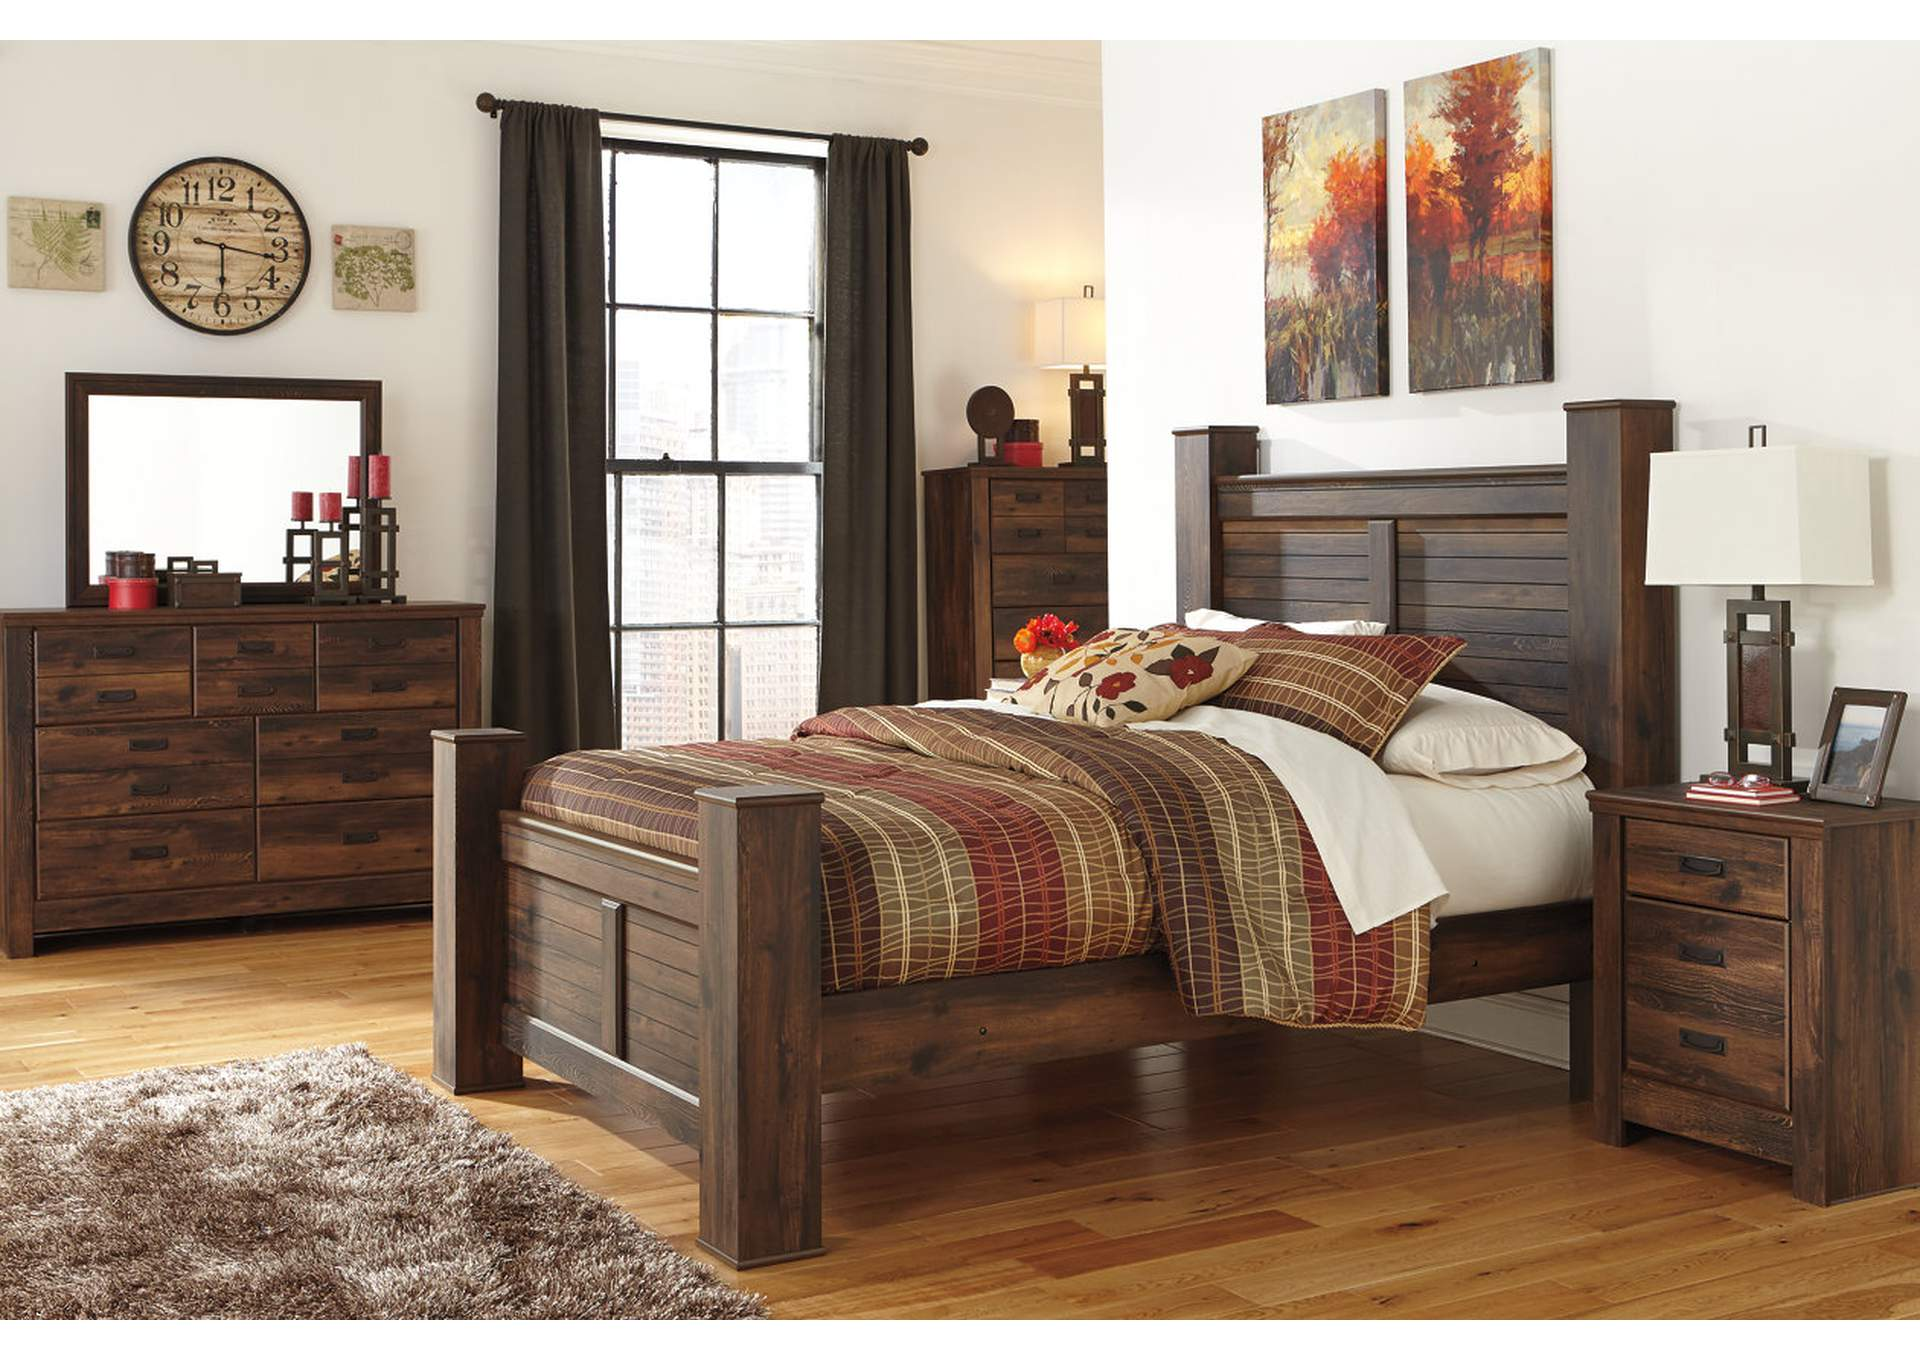 Quinden Queen Poster Bed w/Dresser, Mirror & Drawer Chest,Signature Design By Ashley